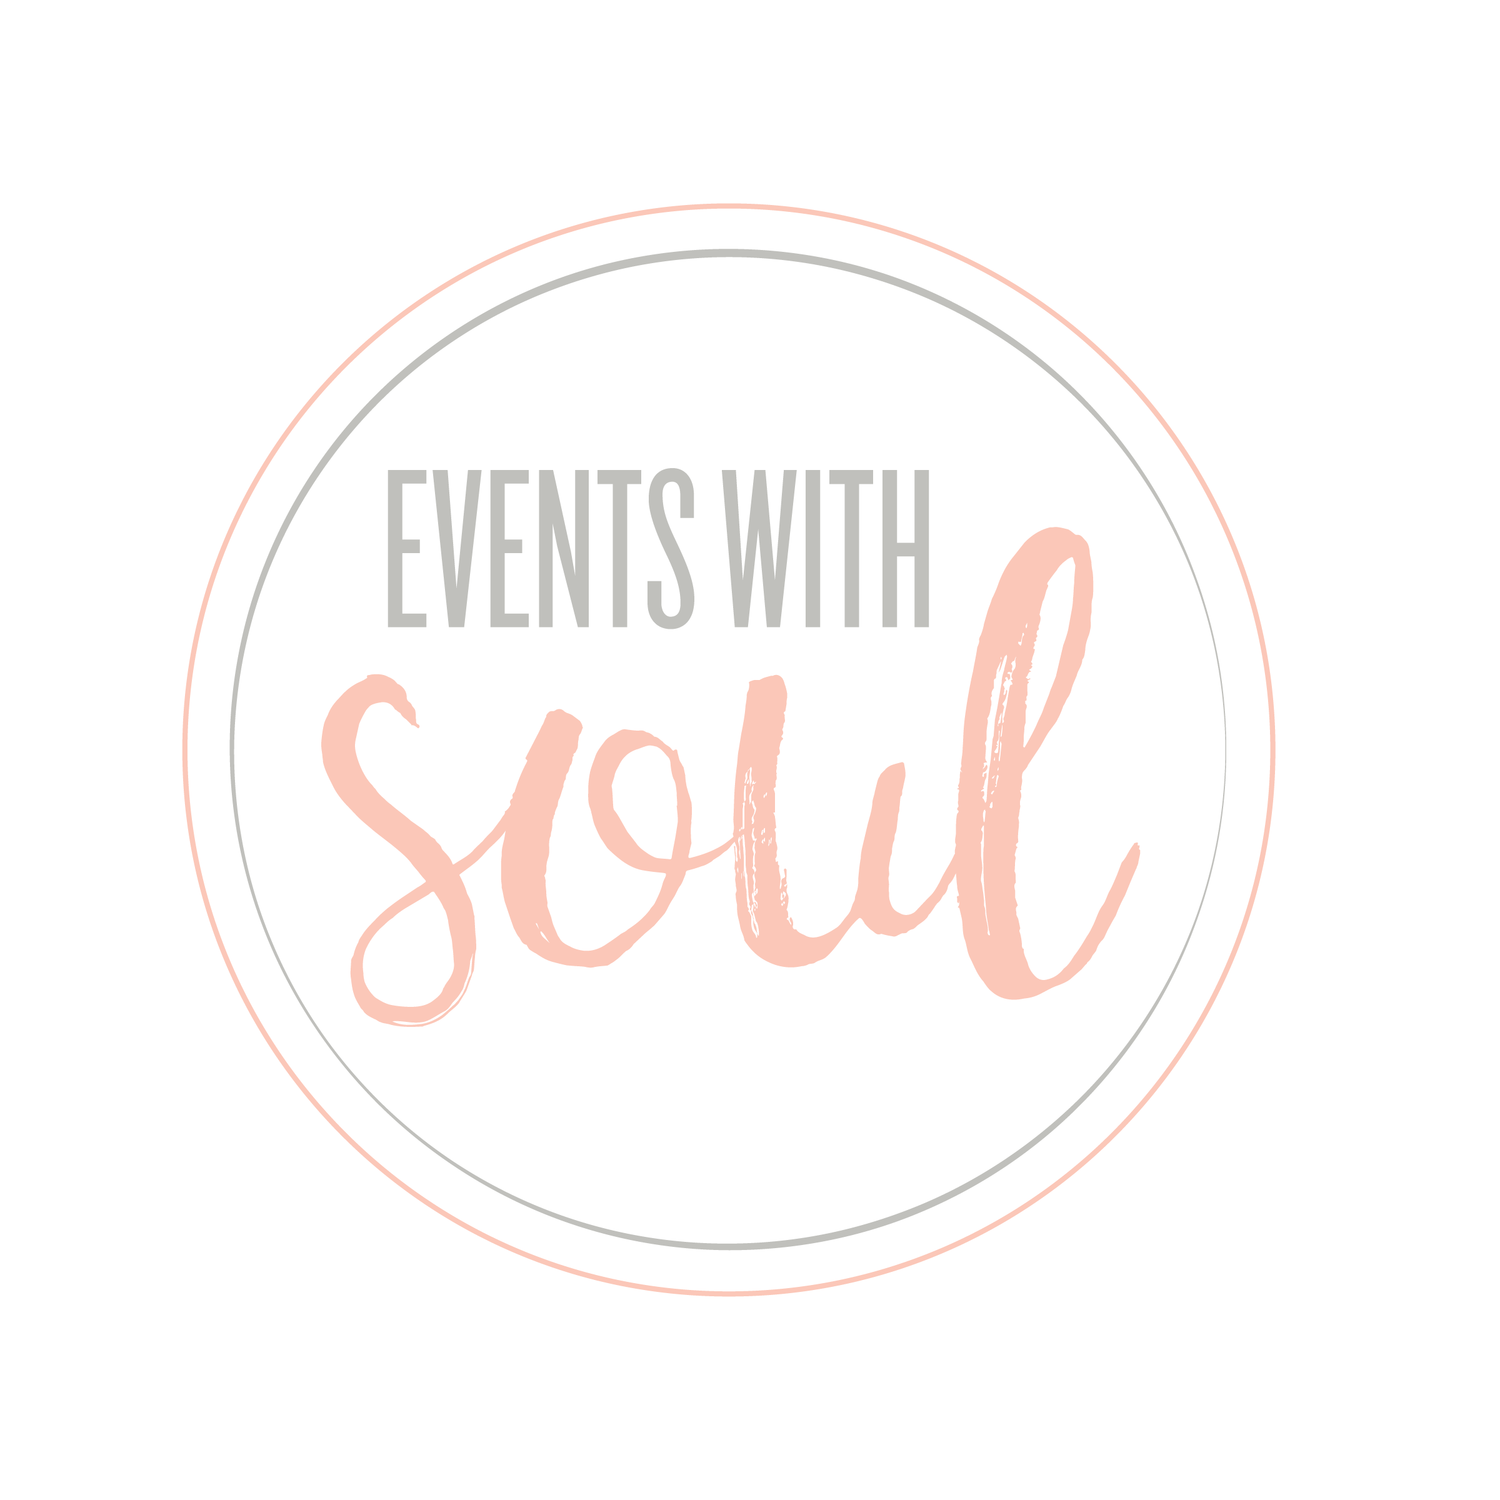 Events with Soul